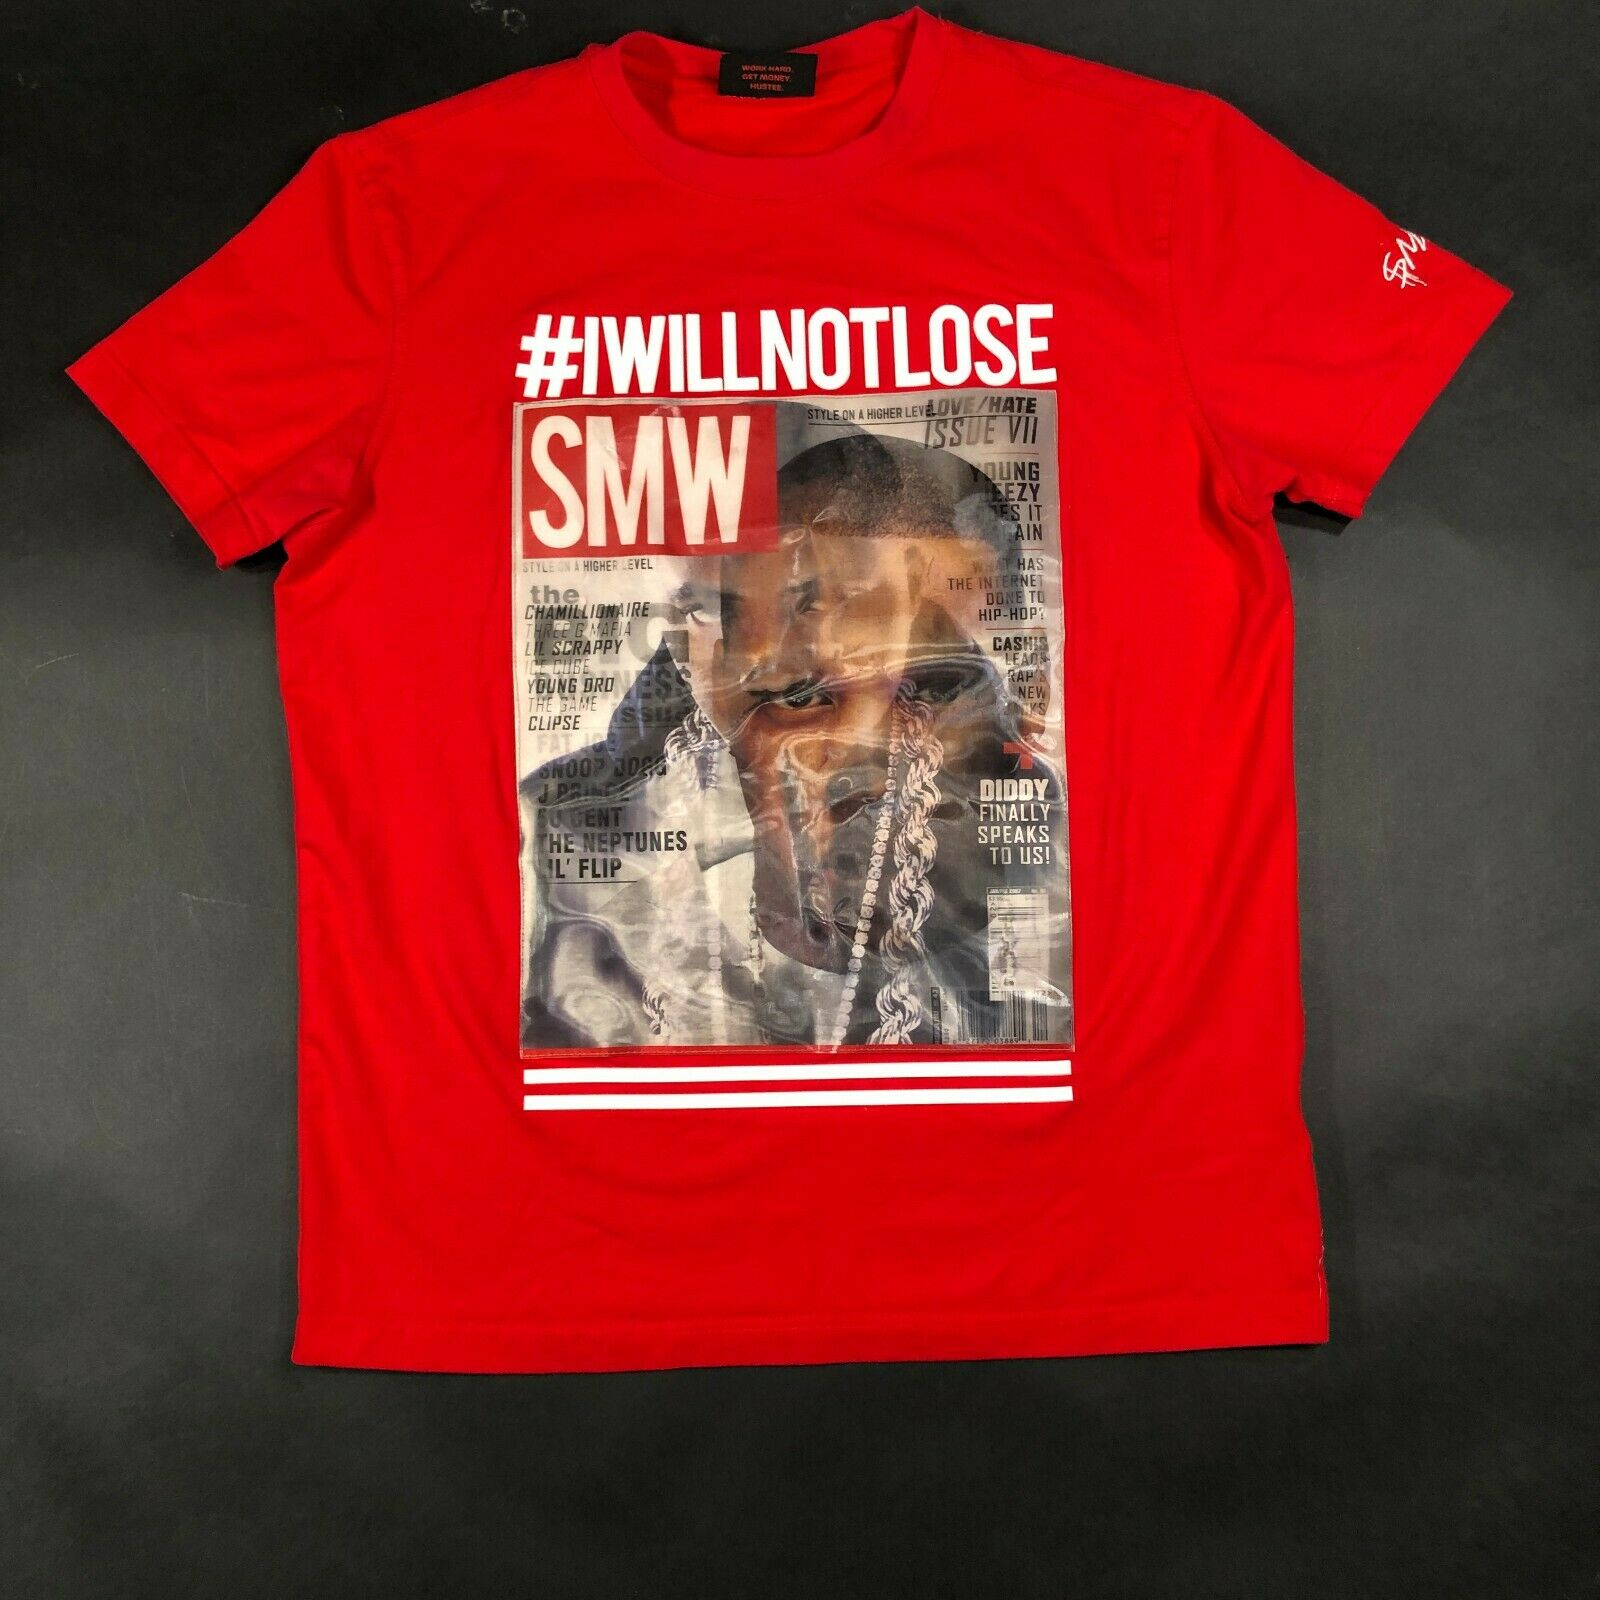 SMW Runs the World Jay Z NaS Ether Takeover Red Reflective Tee T Shirt Mens M Print T-Shirt Men image